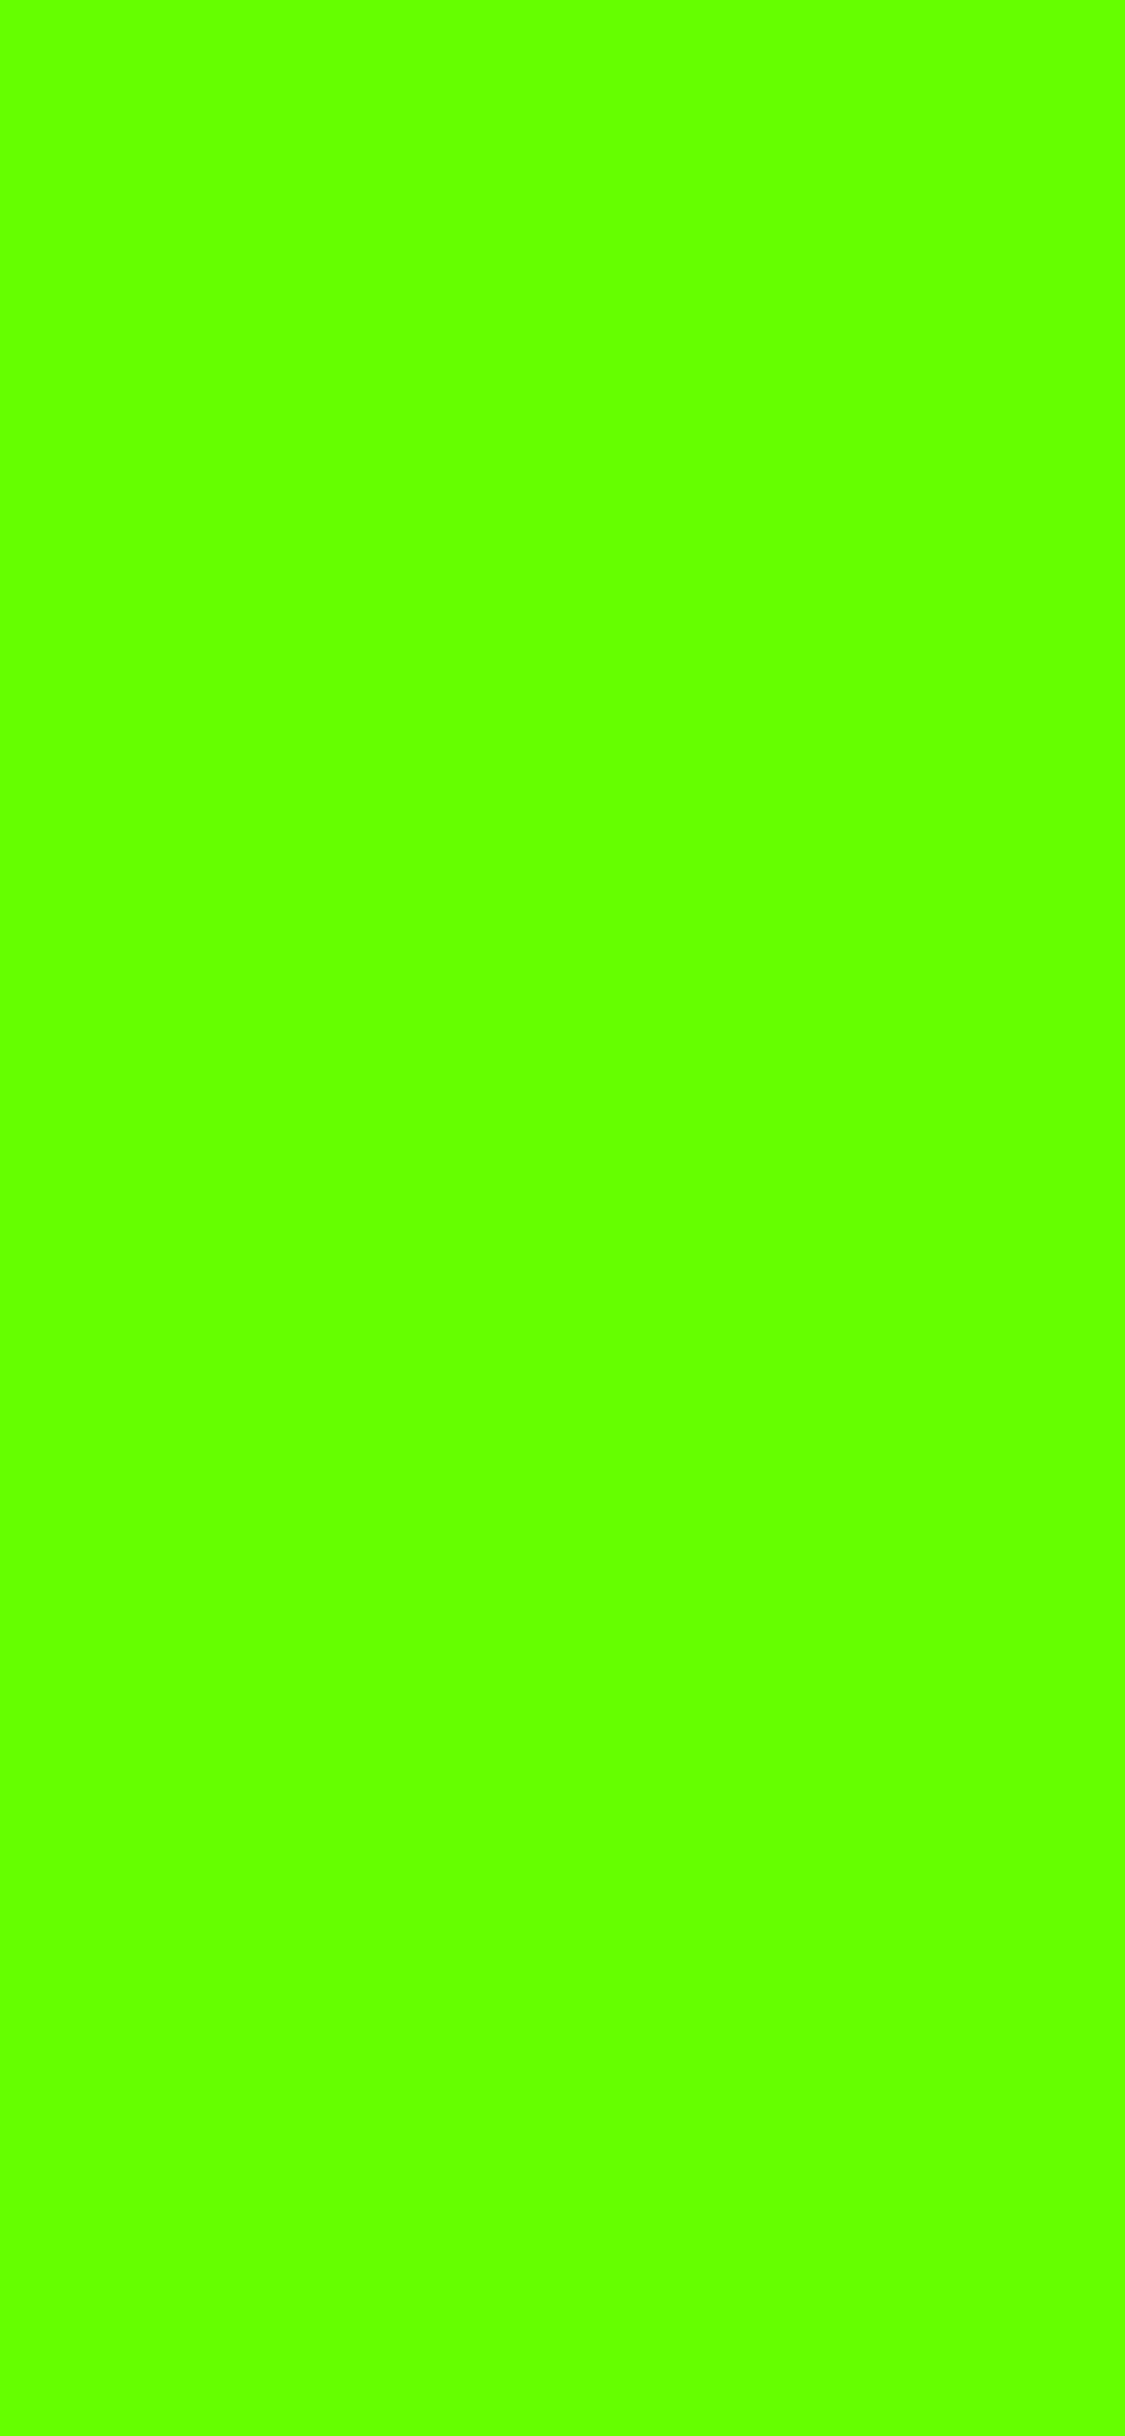 1125x2436 Bright Green Solid Color Background